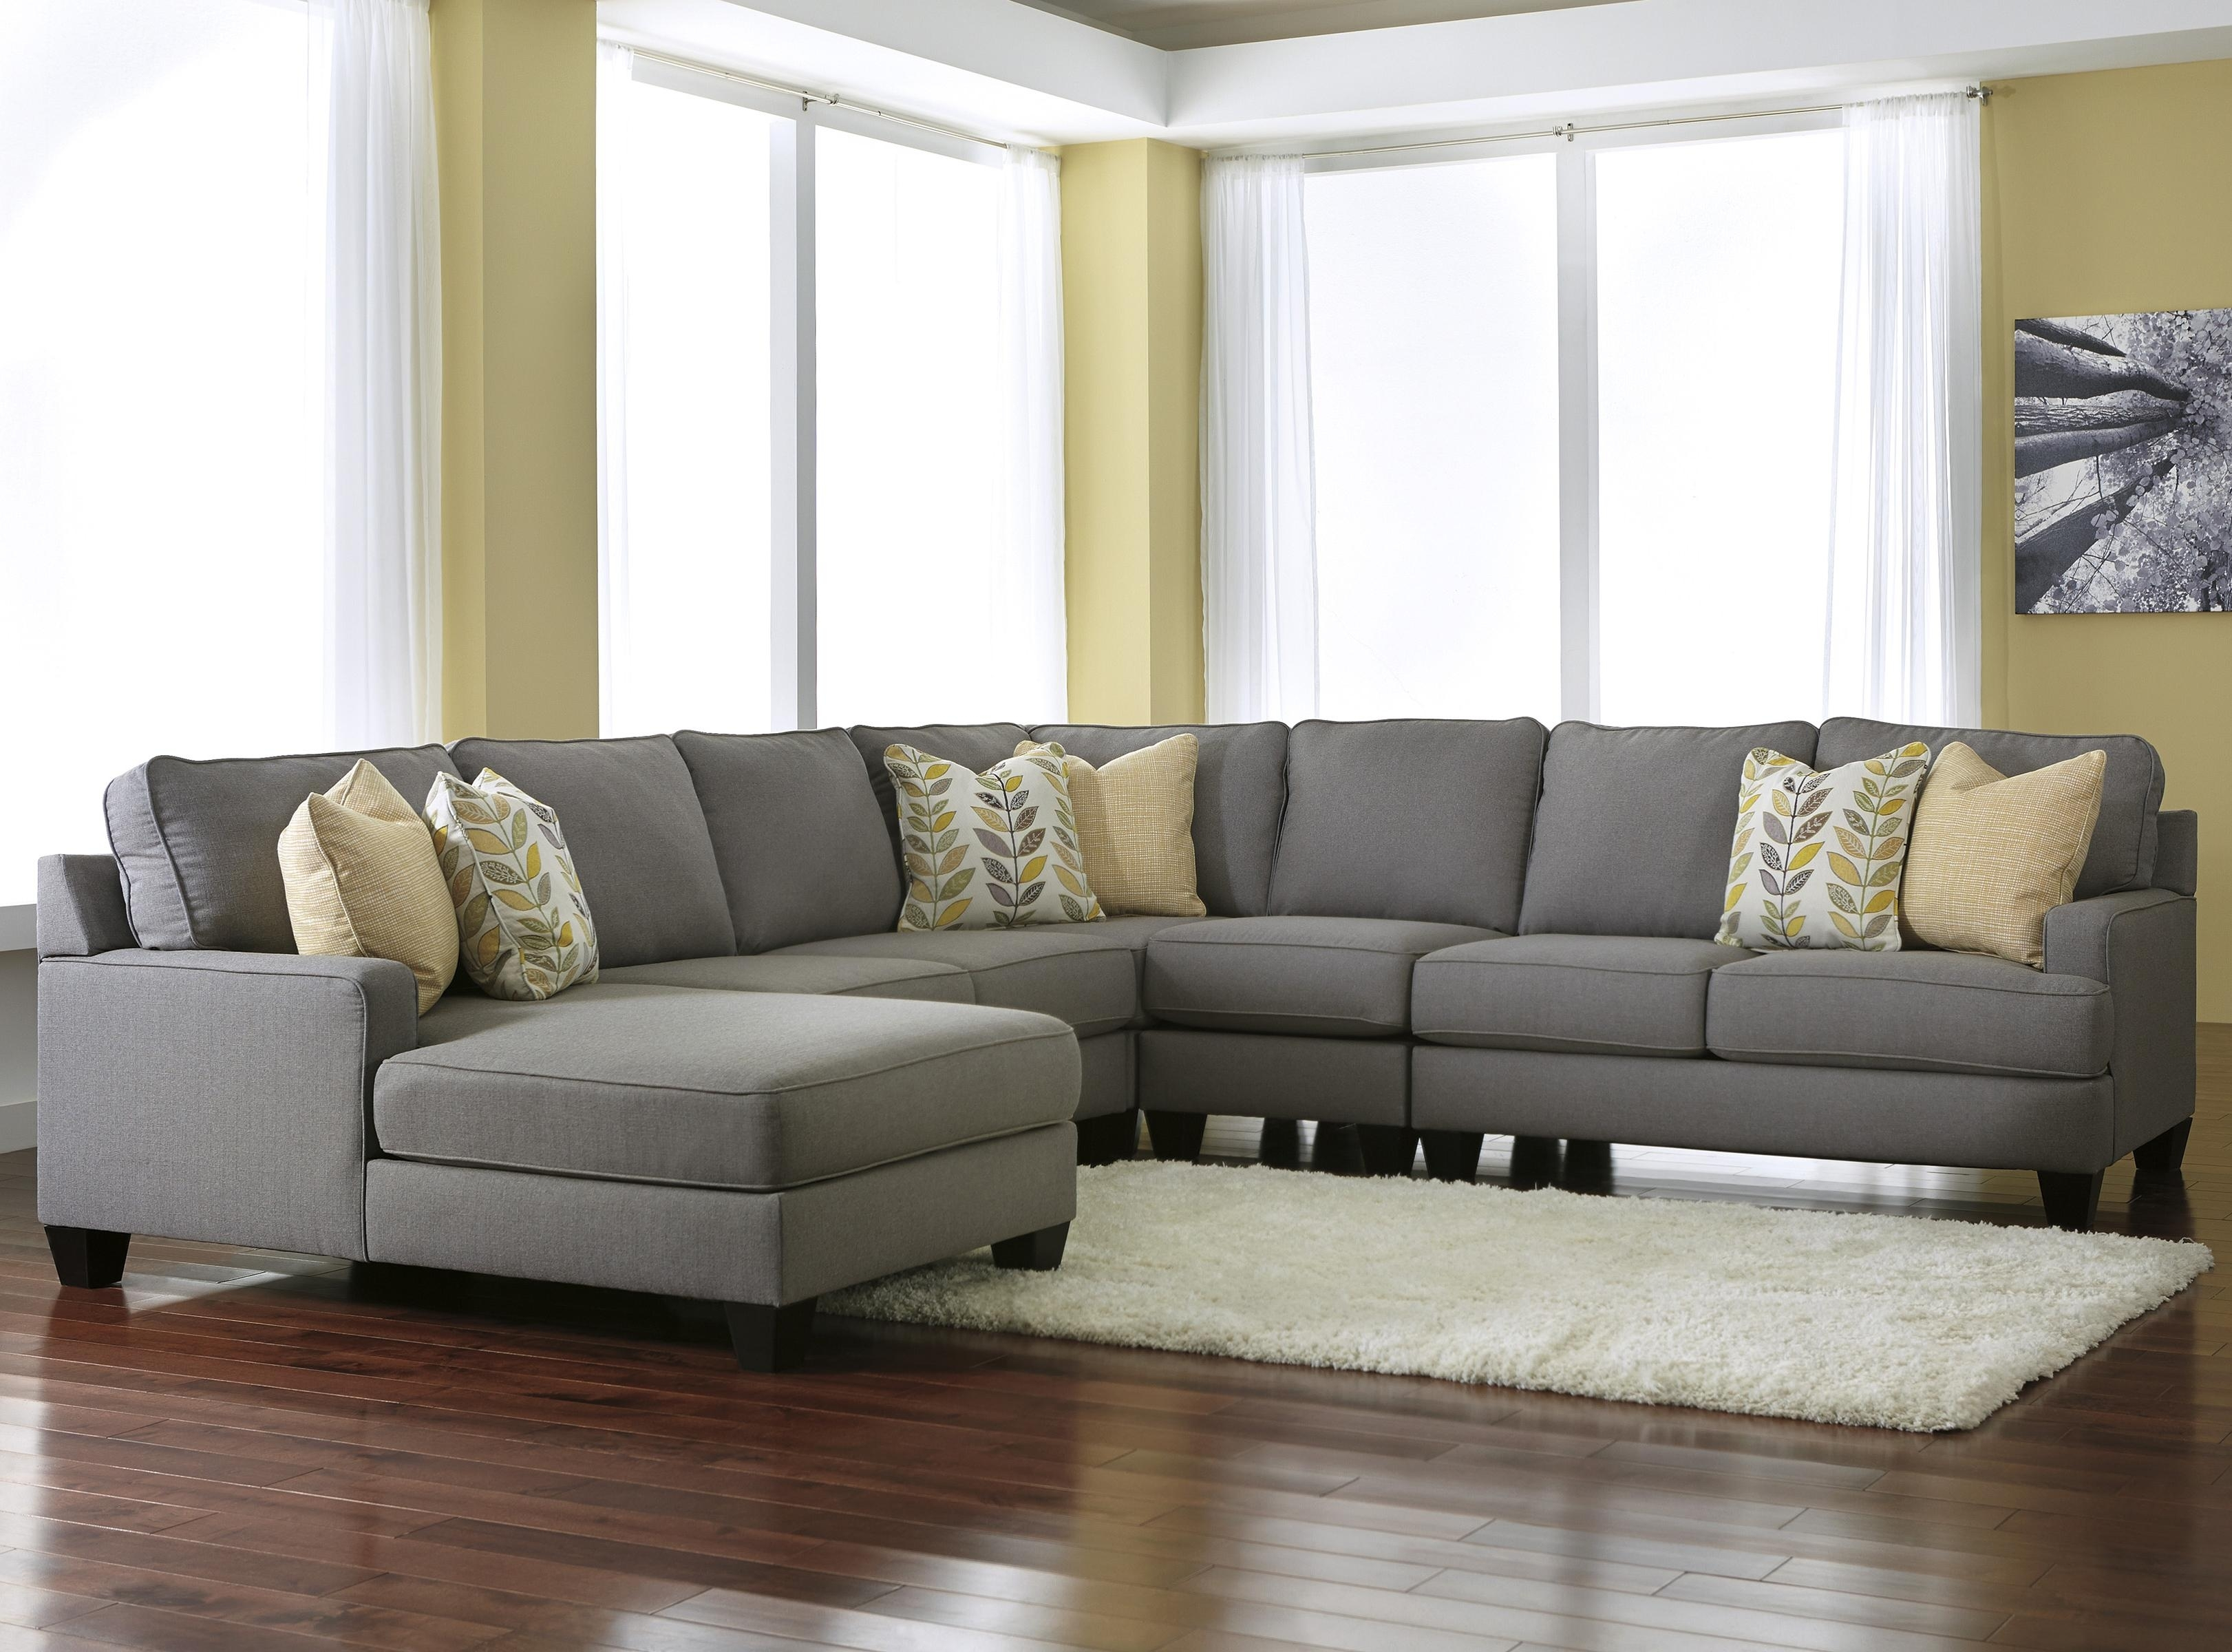 Modern 5-Piece Sectional Sofa With Left Chaise & Reversible Seat intended for Mn Sectional Sofas (Image 6 of 10)